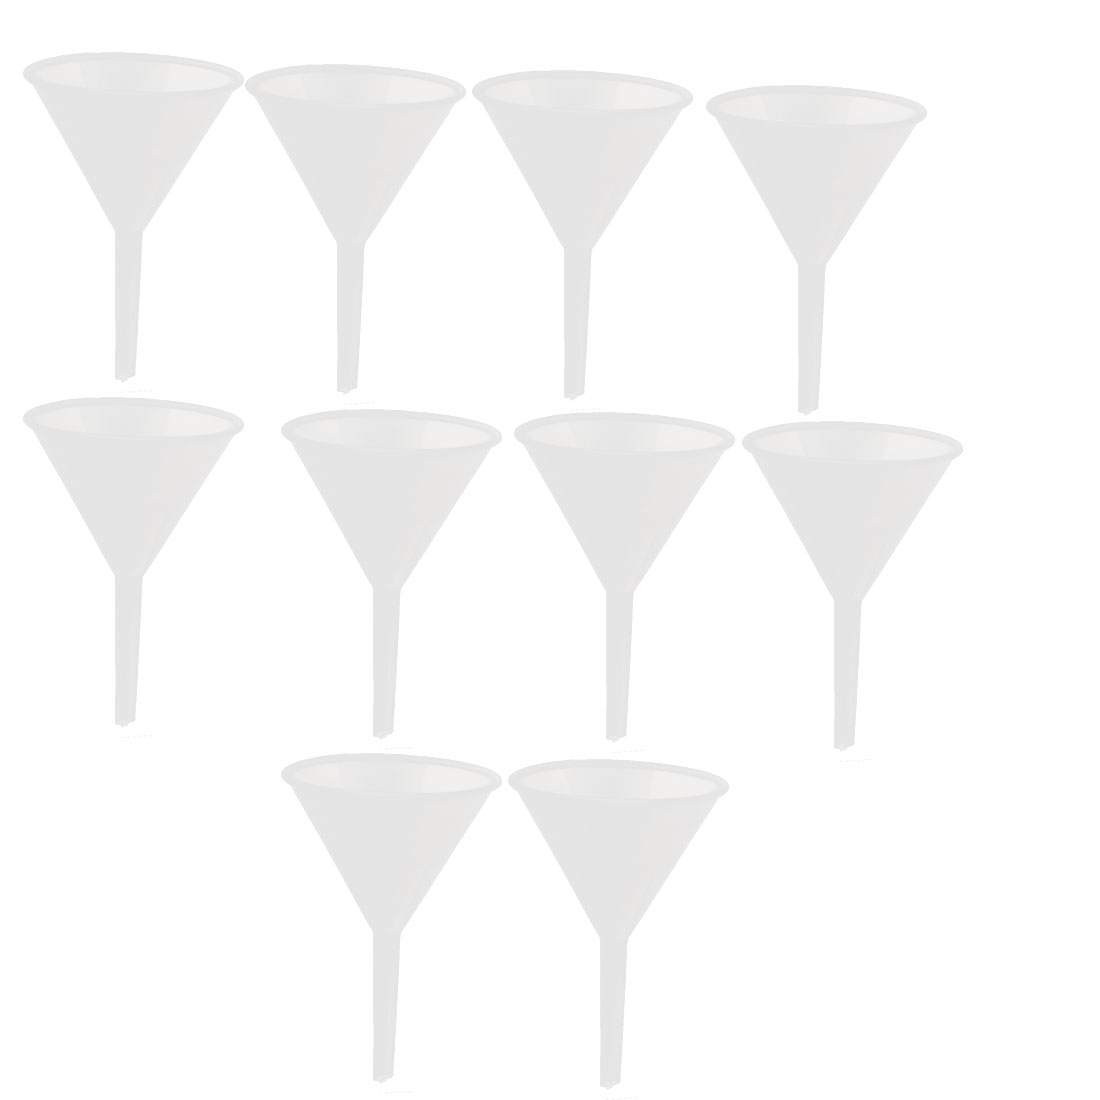 90ml PP Liquid Water Oil Filter Funnel Filling Tool Clear 10pcs